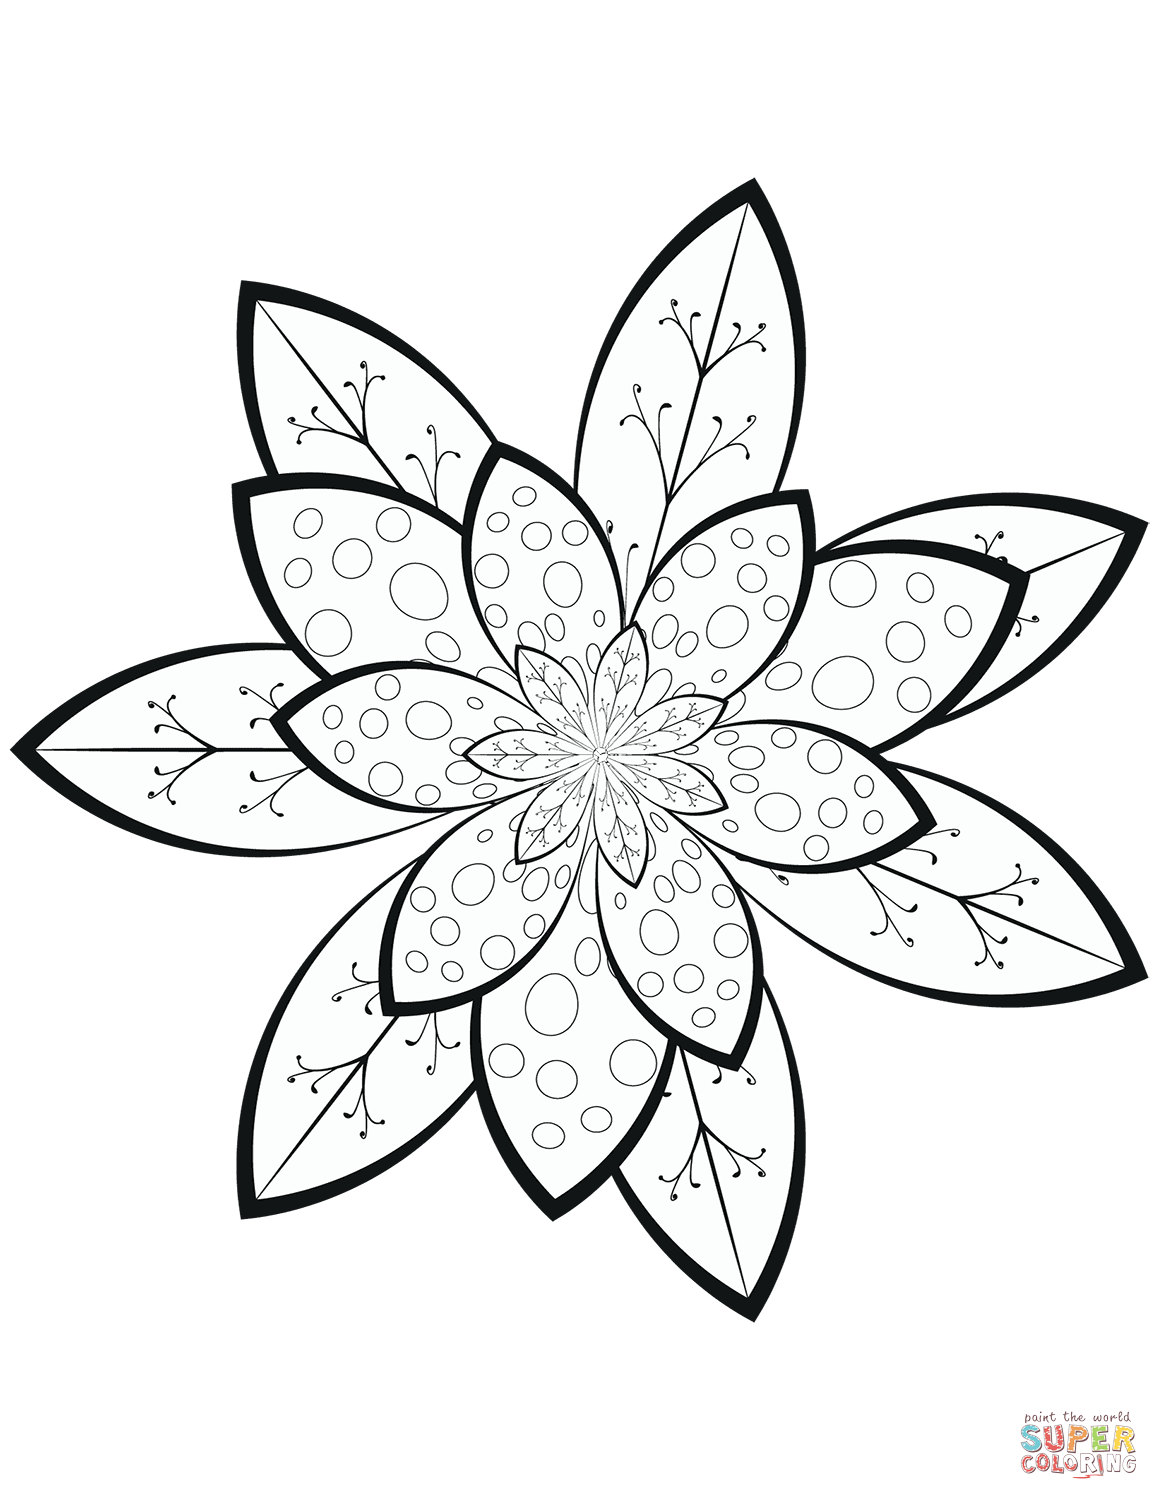 flower pattern colouring pages hearts and flowers pattern coloring page free printable pages colouring pattern flower